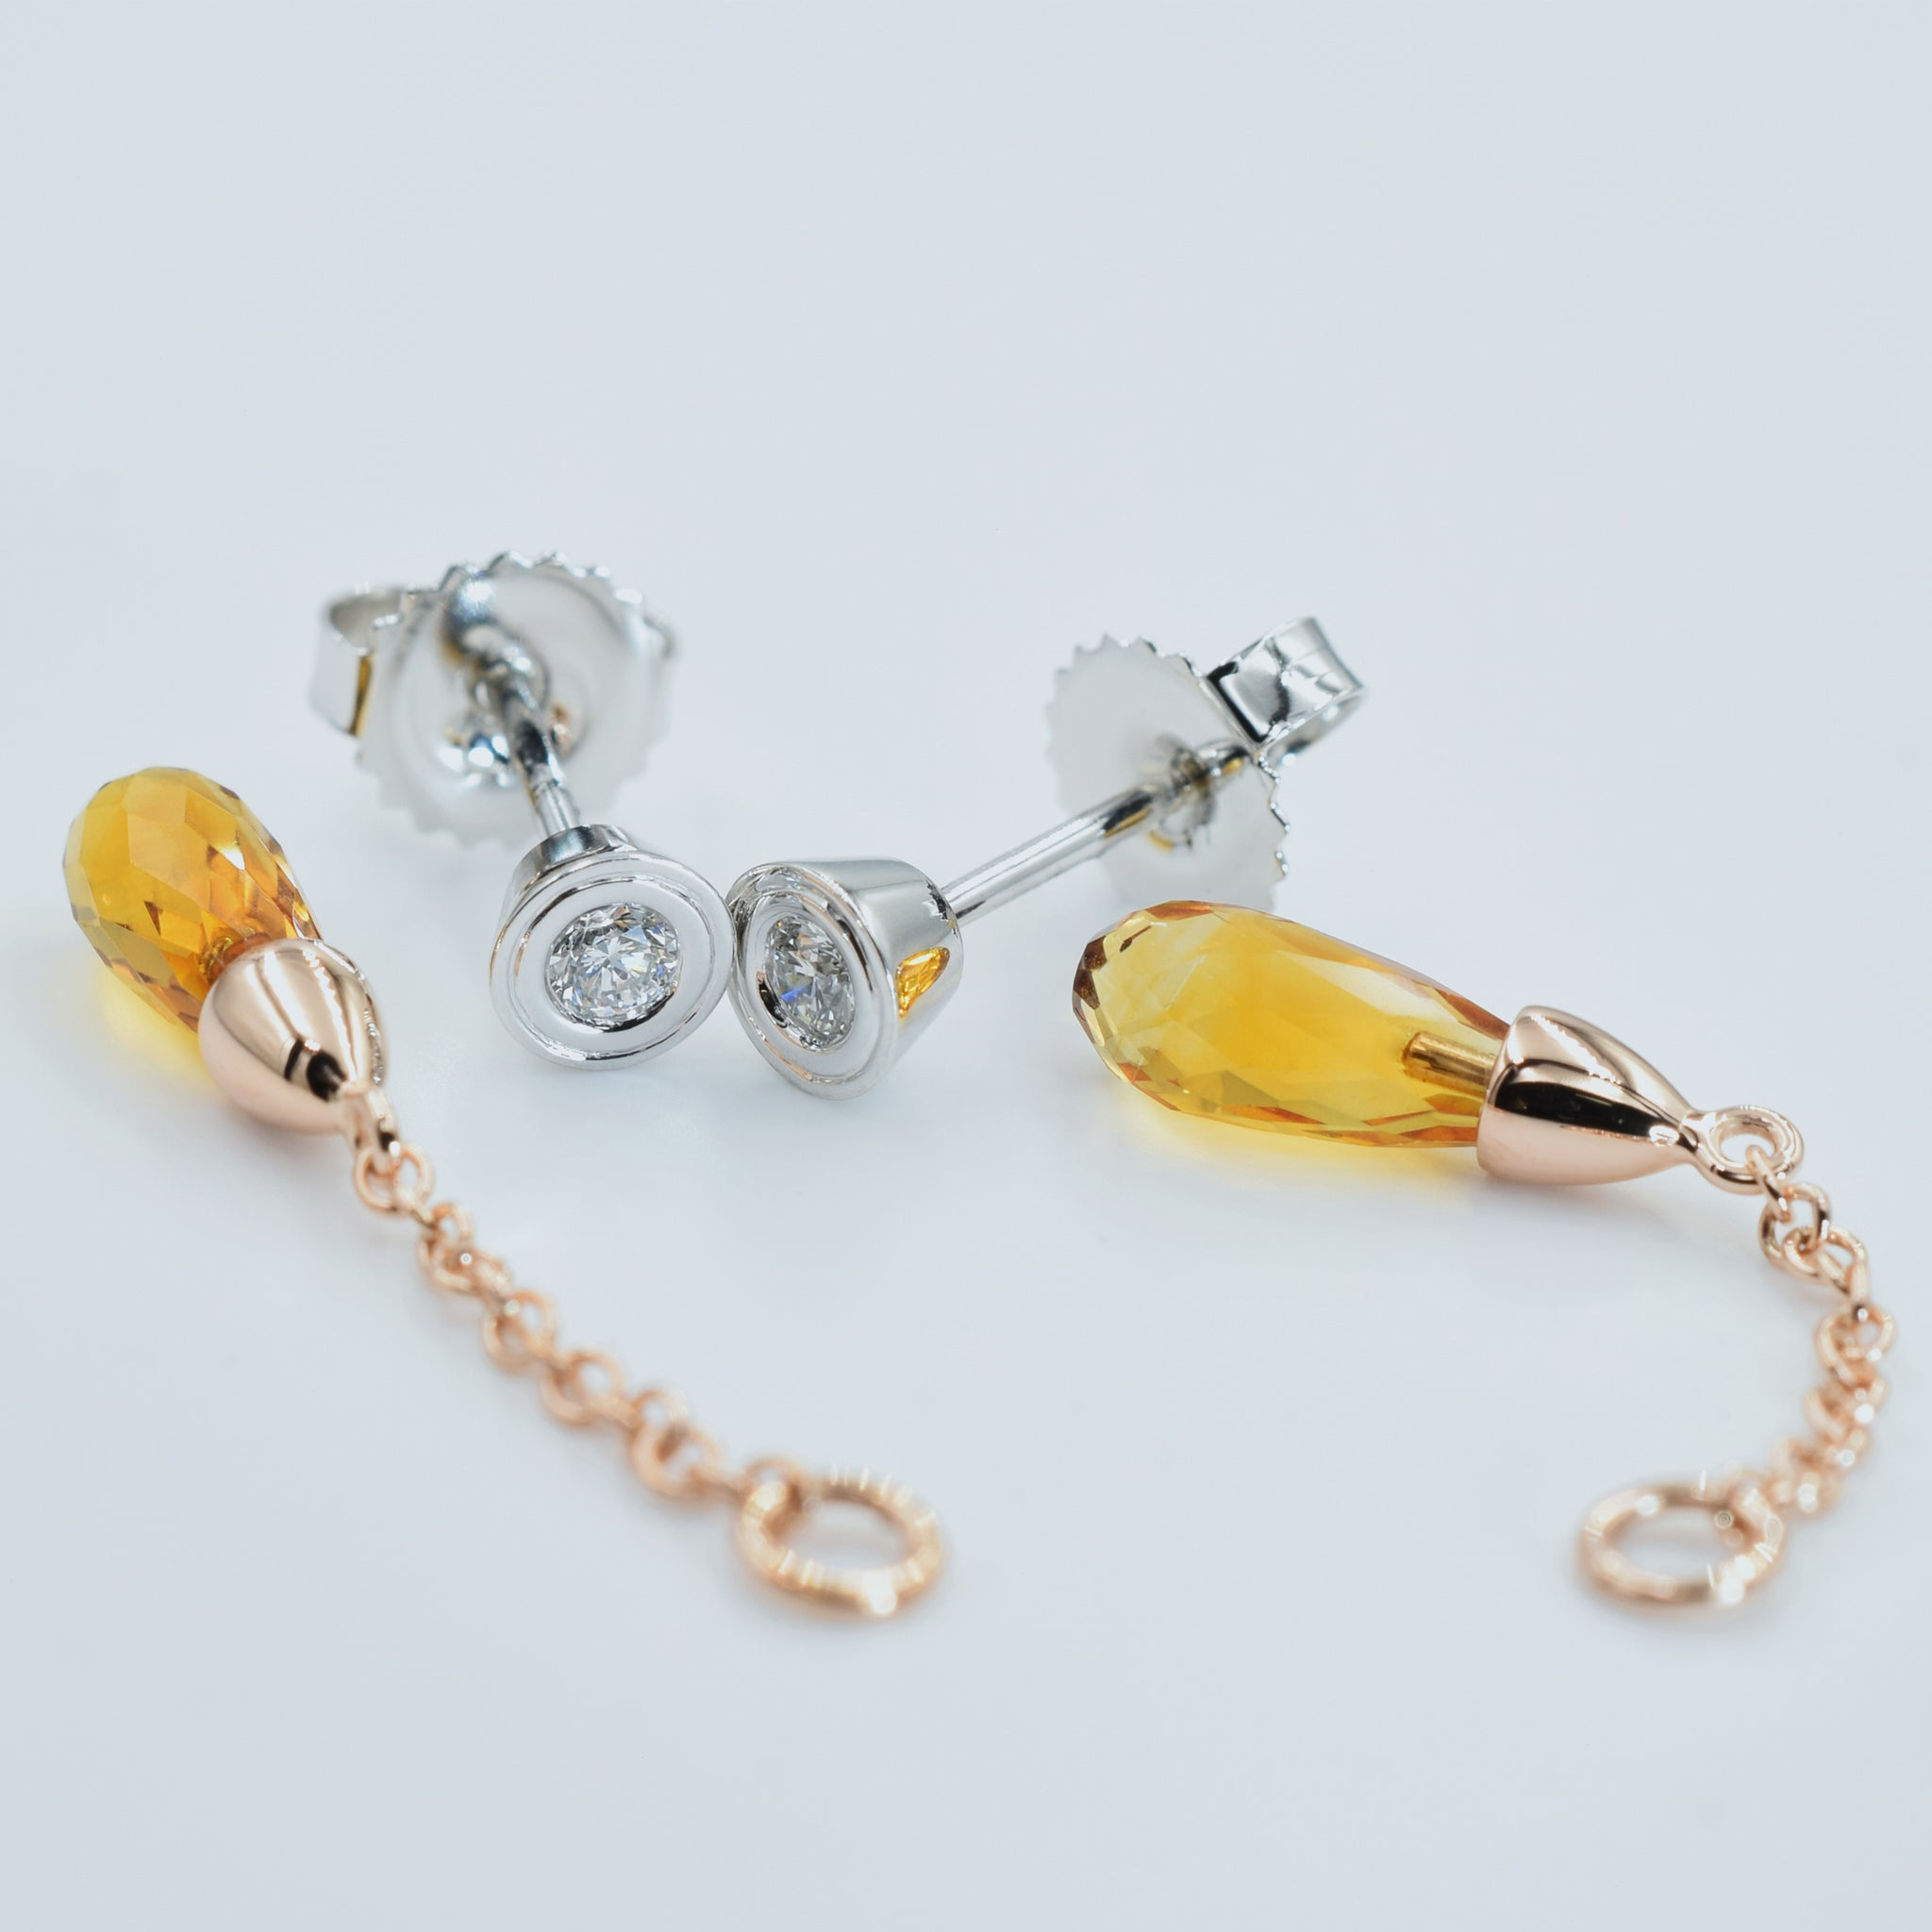 White and rose gold earrings. Wear as simplistic diamond studs or with rose gold briolette cut citrine attachment